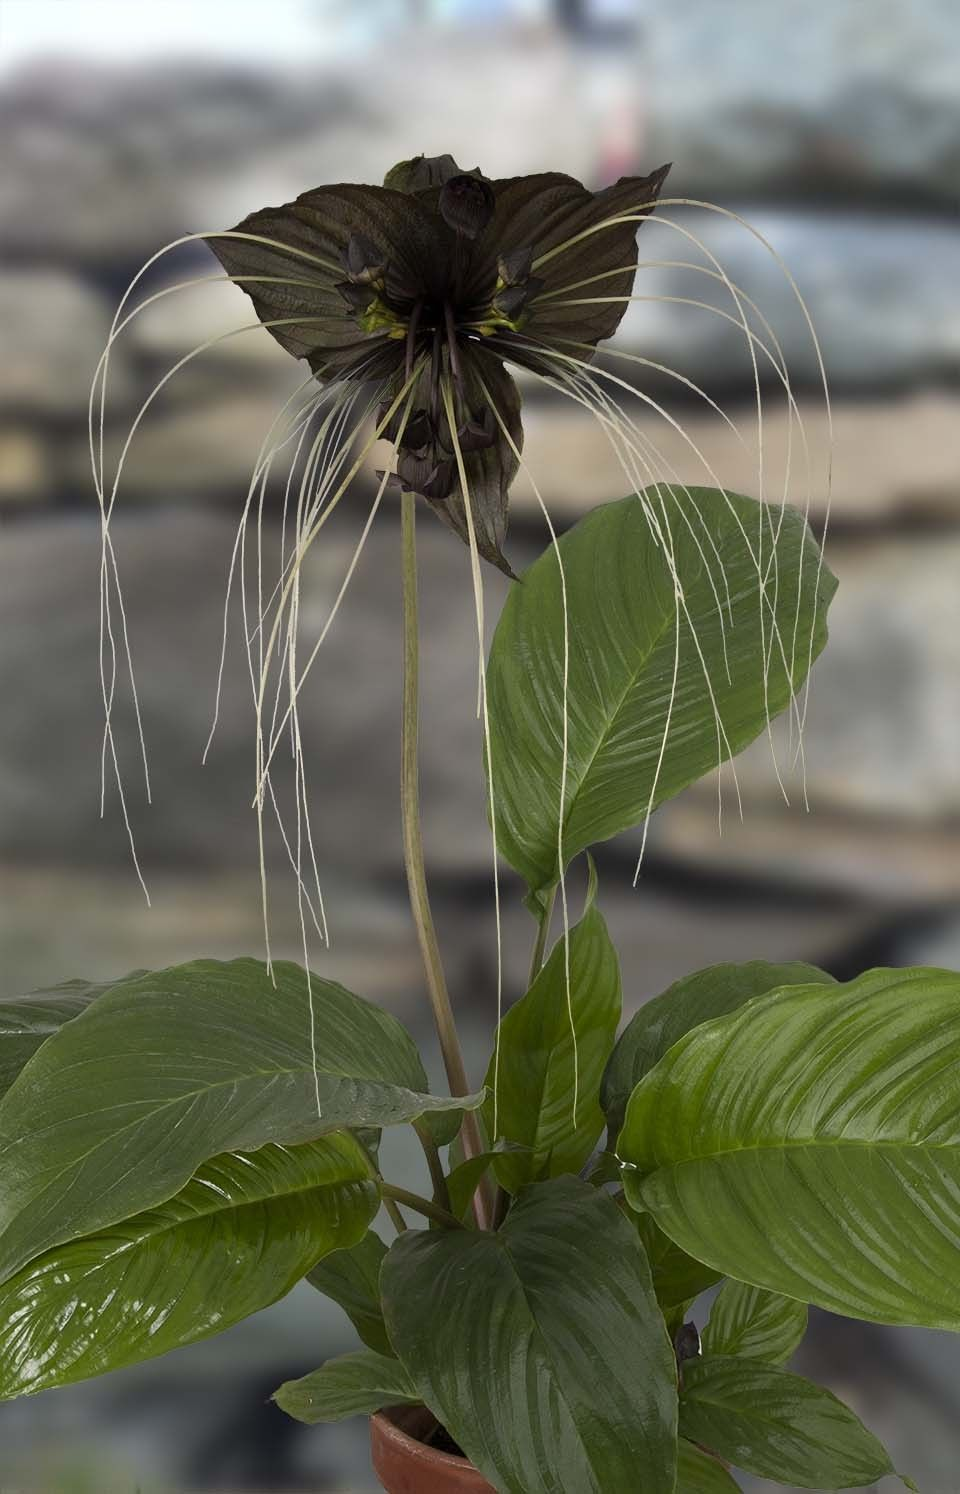 Black Bat Flower Tacca Chantrieri A That Looks Like With Long Cat Whiskers Prefers Partial Sun Or Filtered Light Warm Temps And Good Air